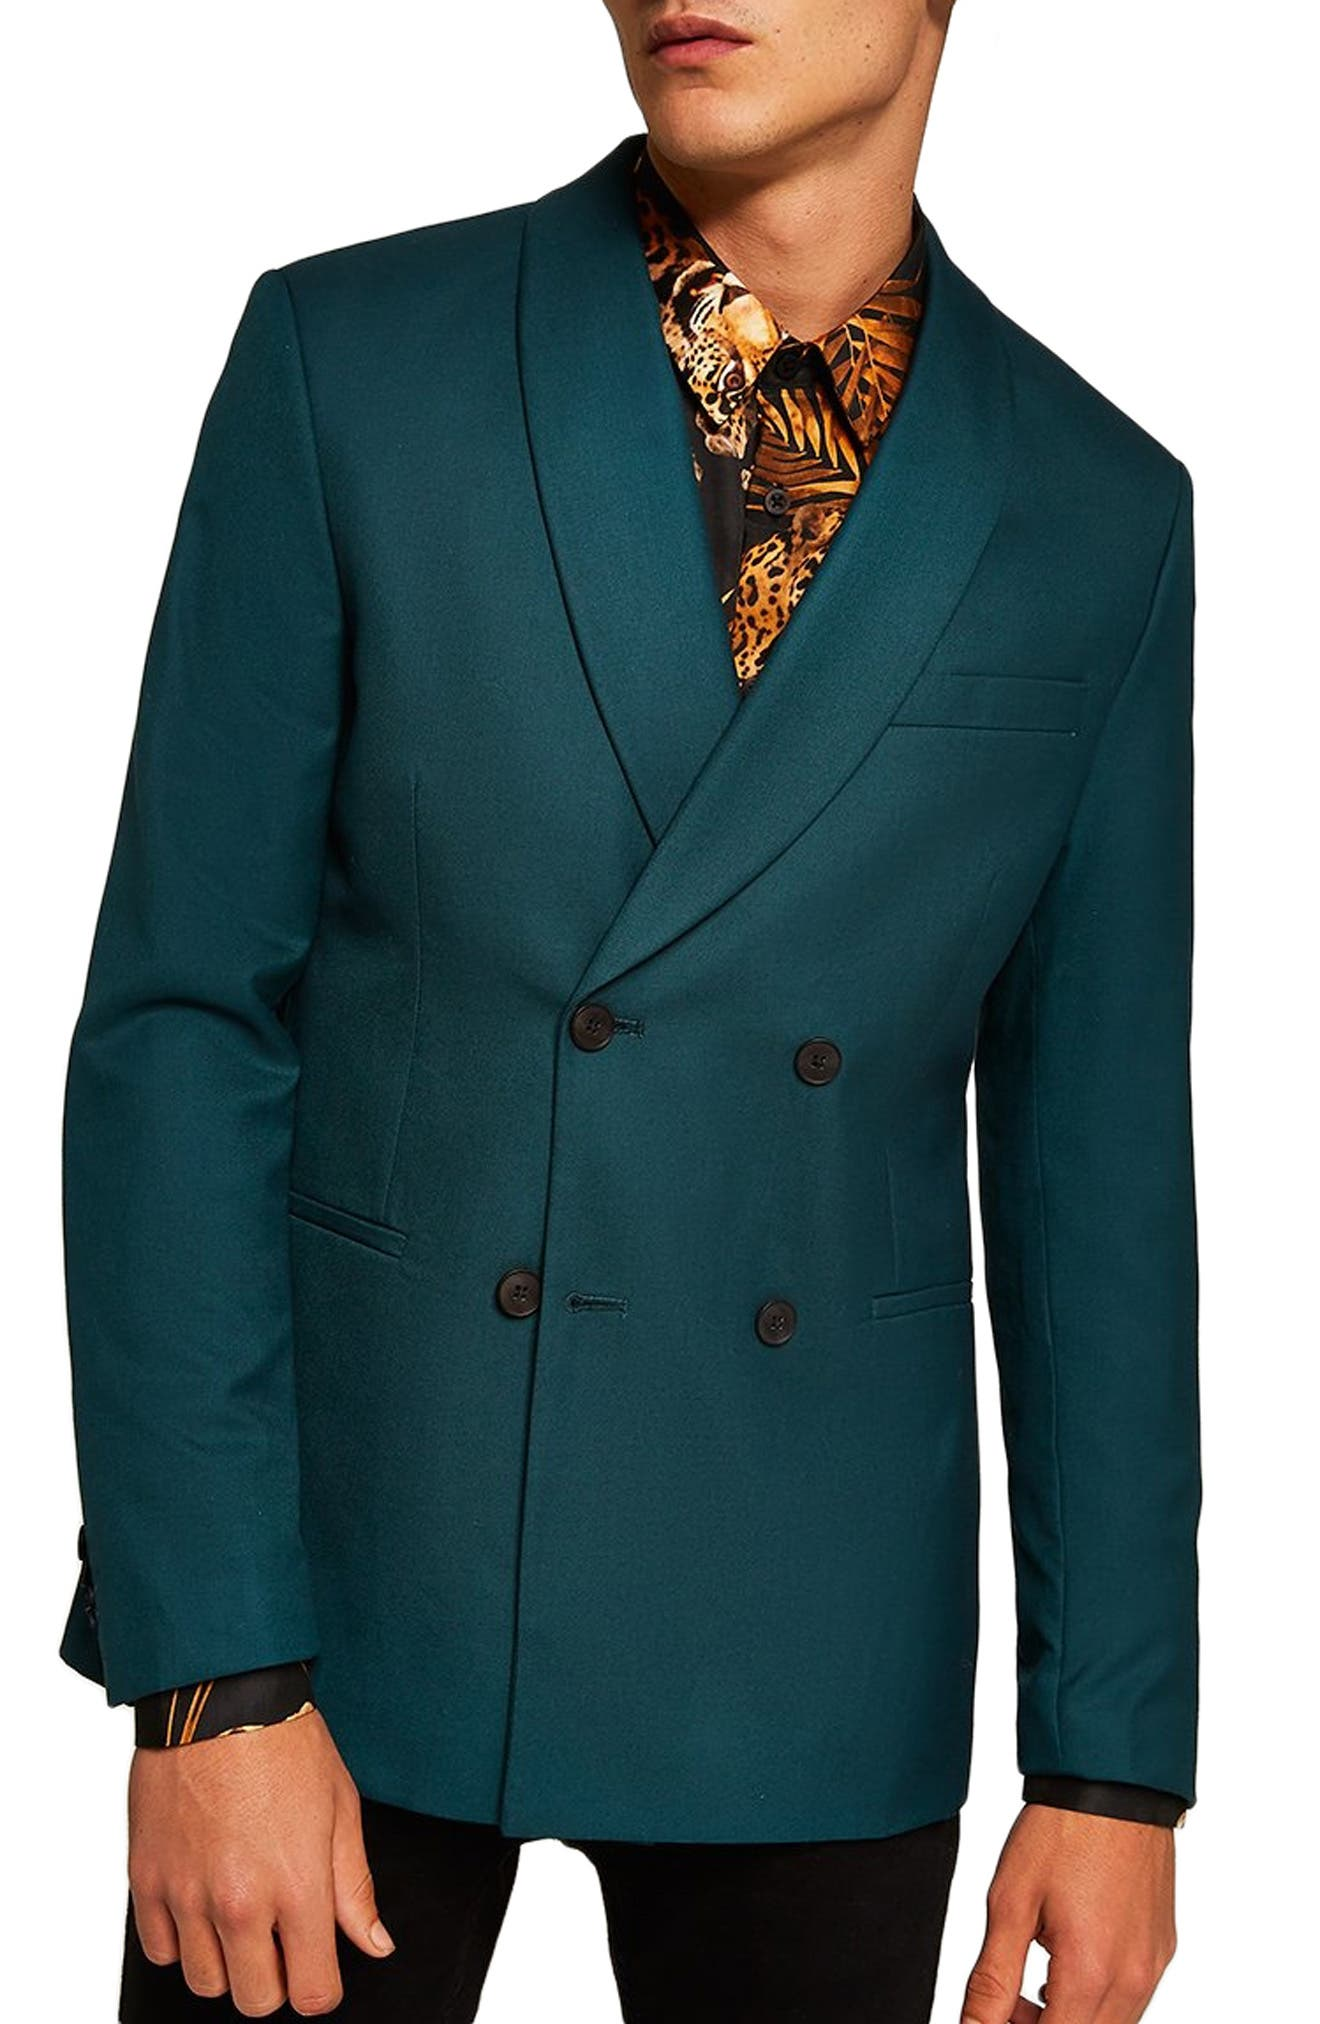 Skinny Fit Double Breasted Blazer,                             Main thumbnail 1, color,                             300